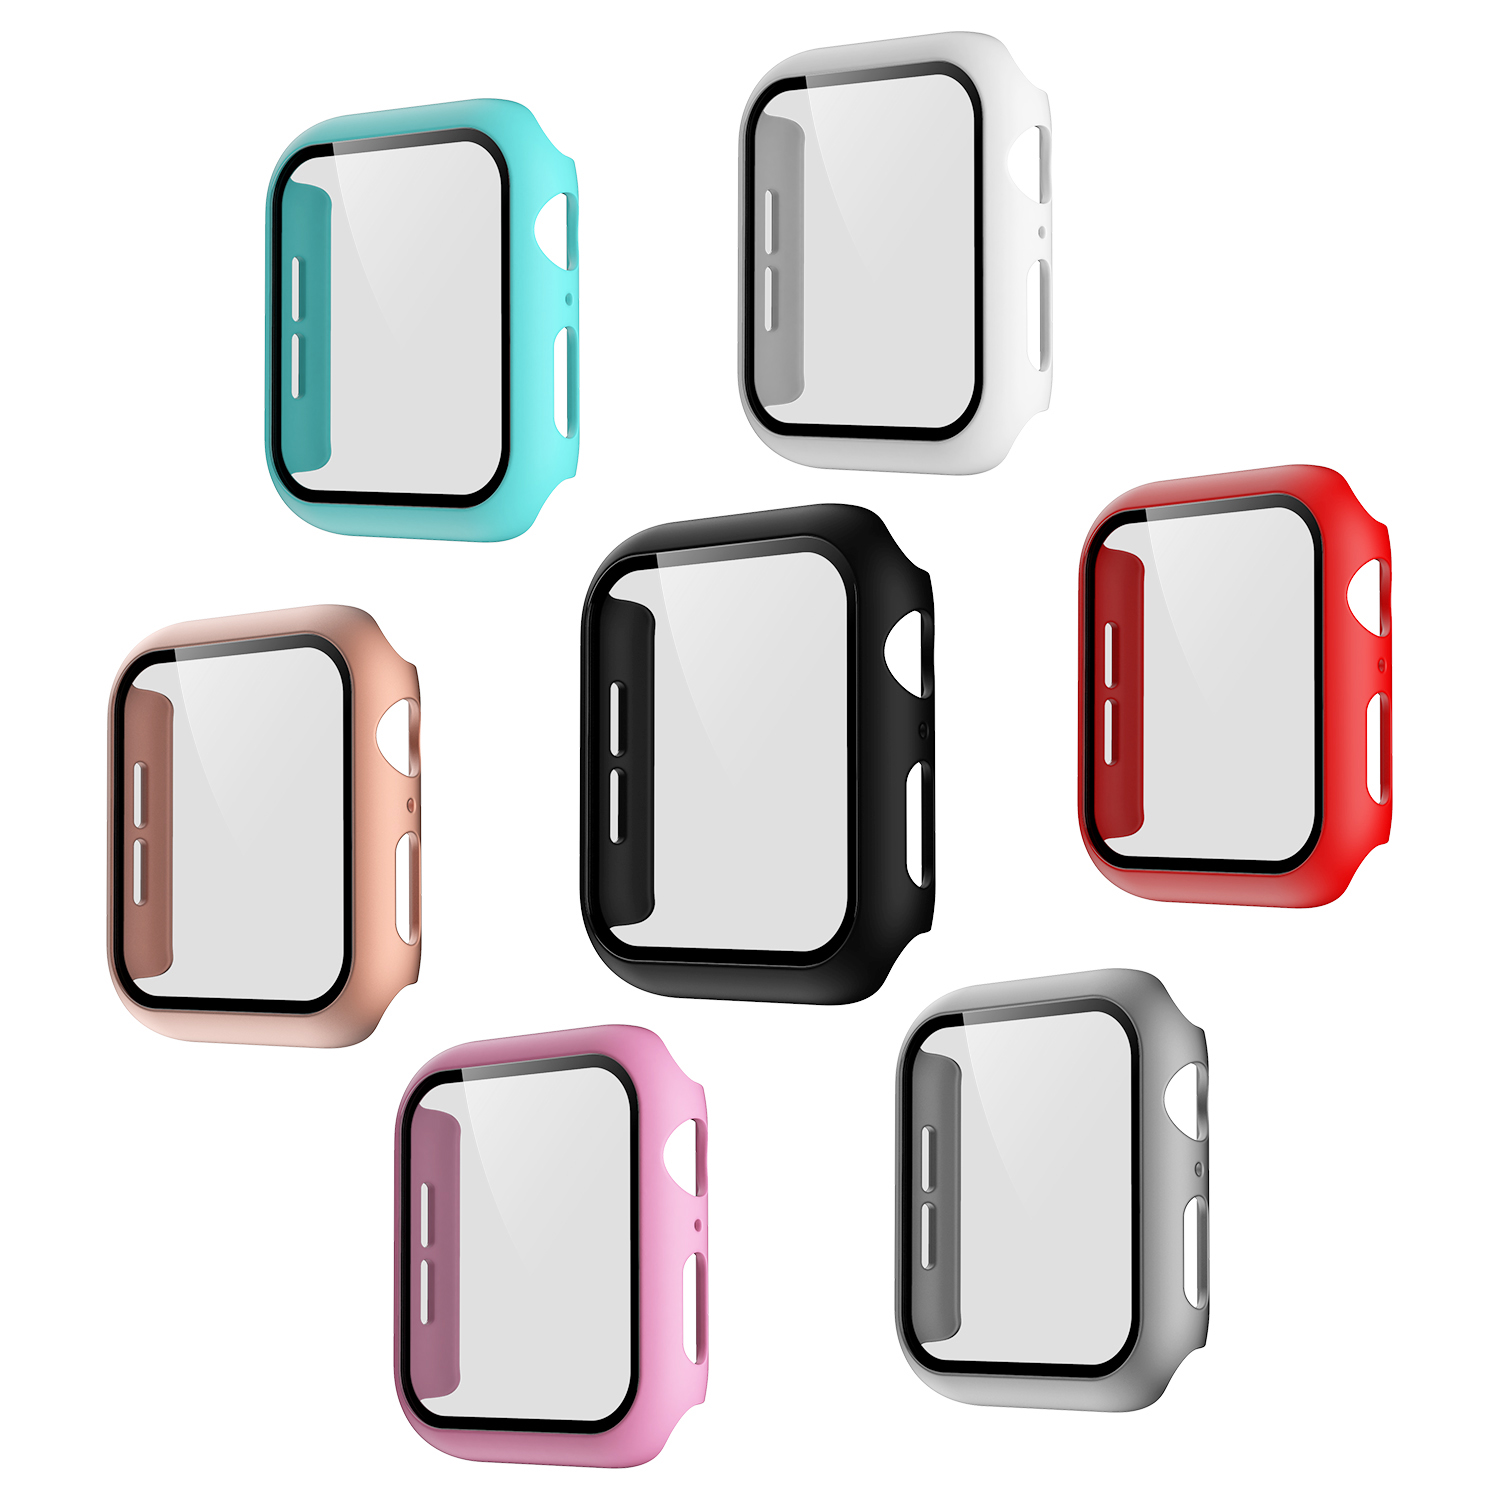 Watch Accessories protection tempered hard Cover 38mm 40mm 42mm 44mm for Apple Watch Bumper Case for iwatch case